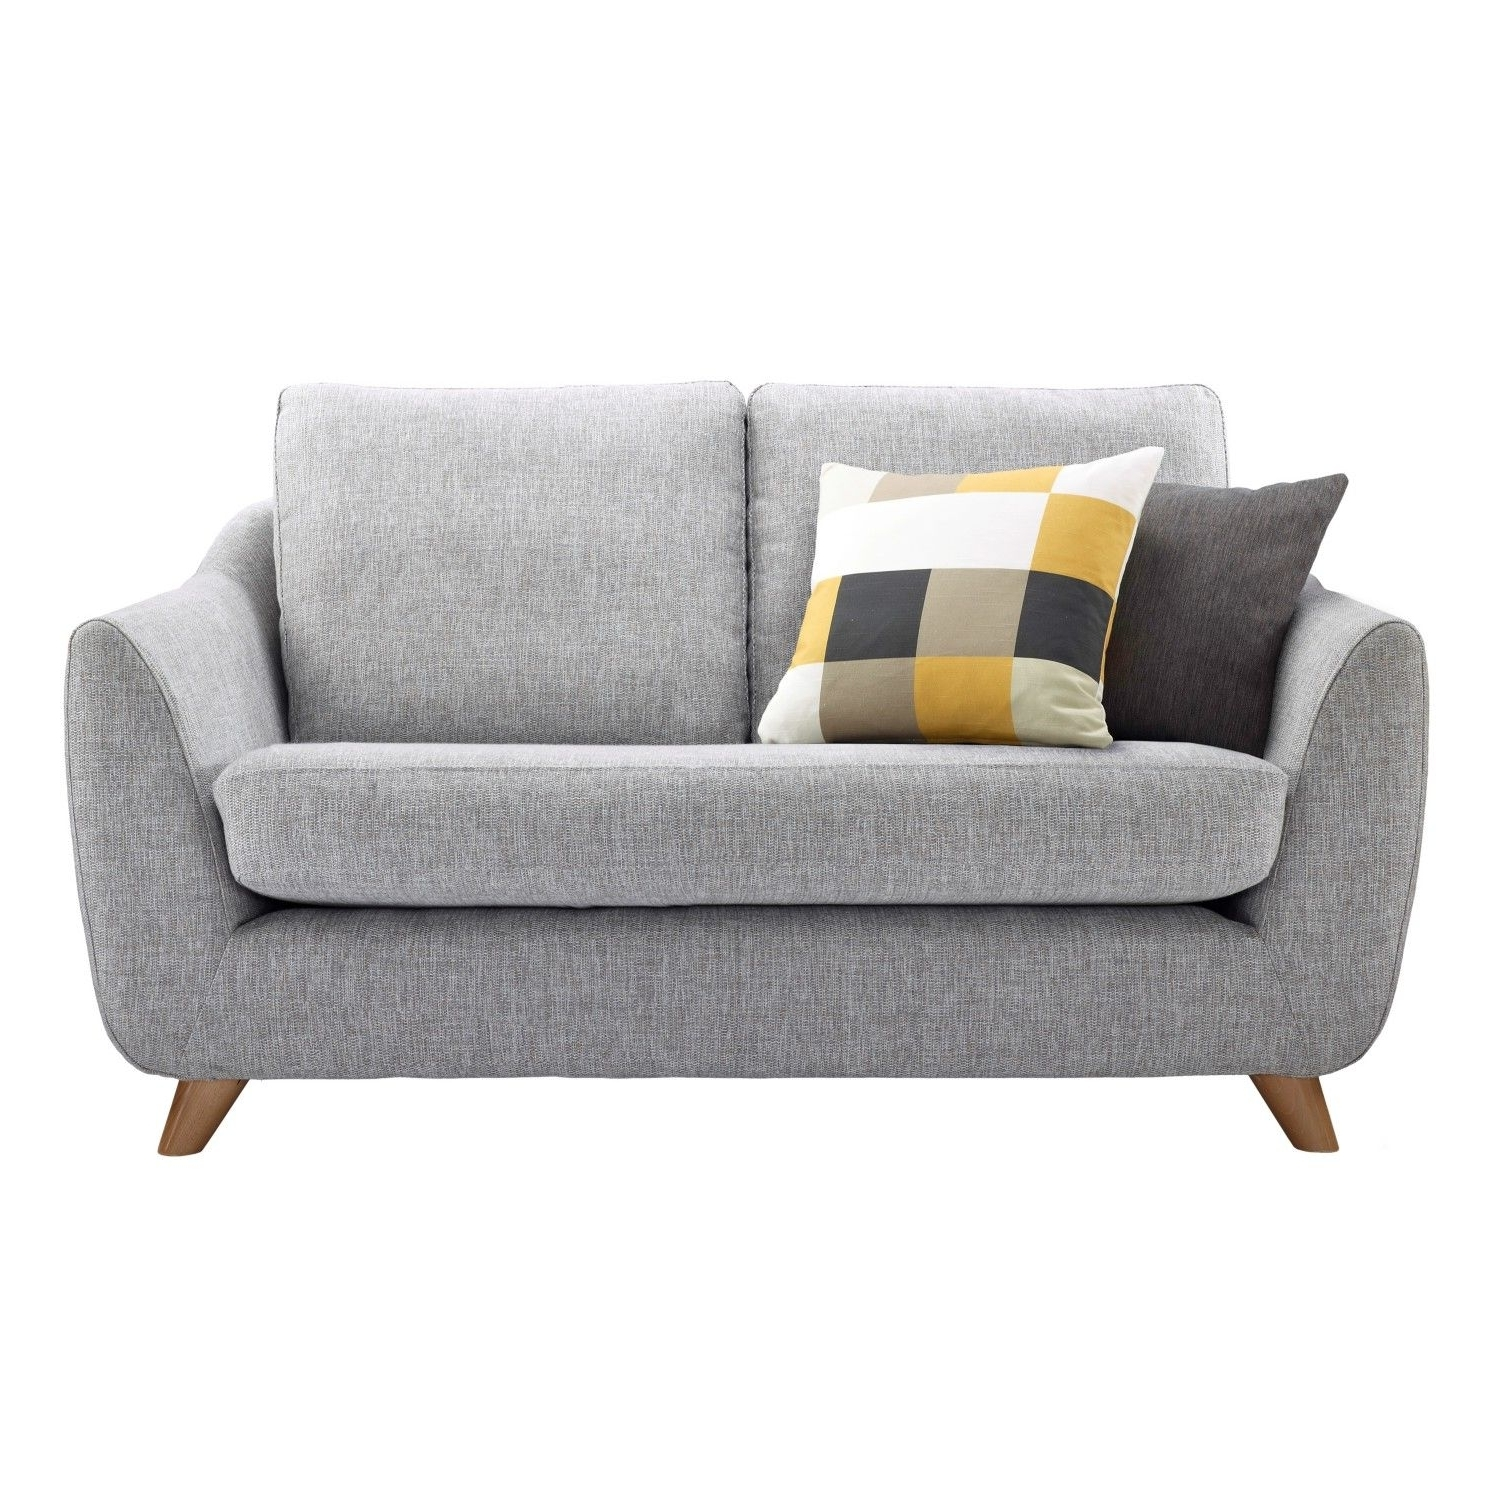 Loveseats For Small Spaces (View 5 of 15)